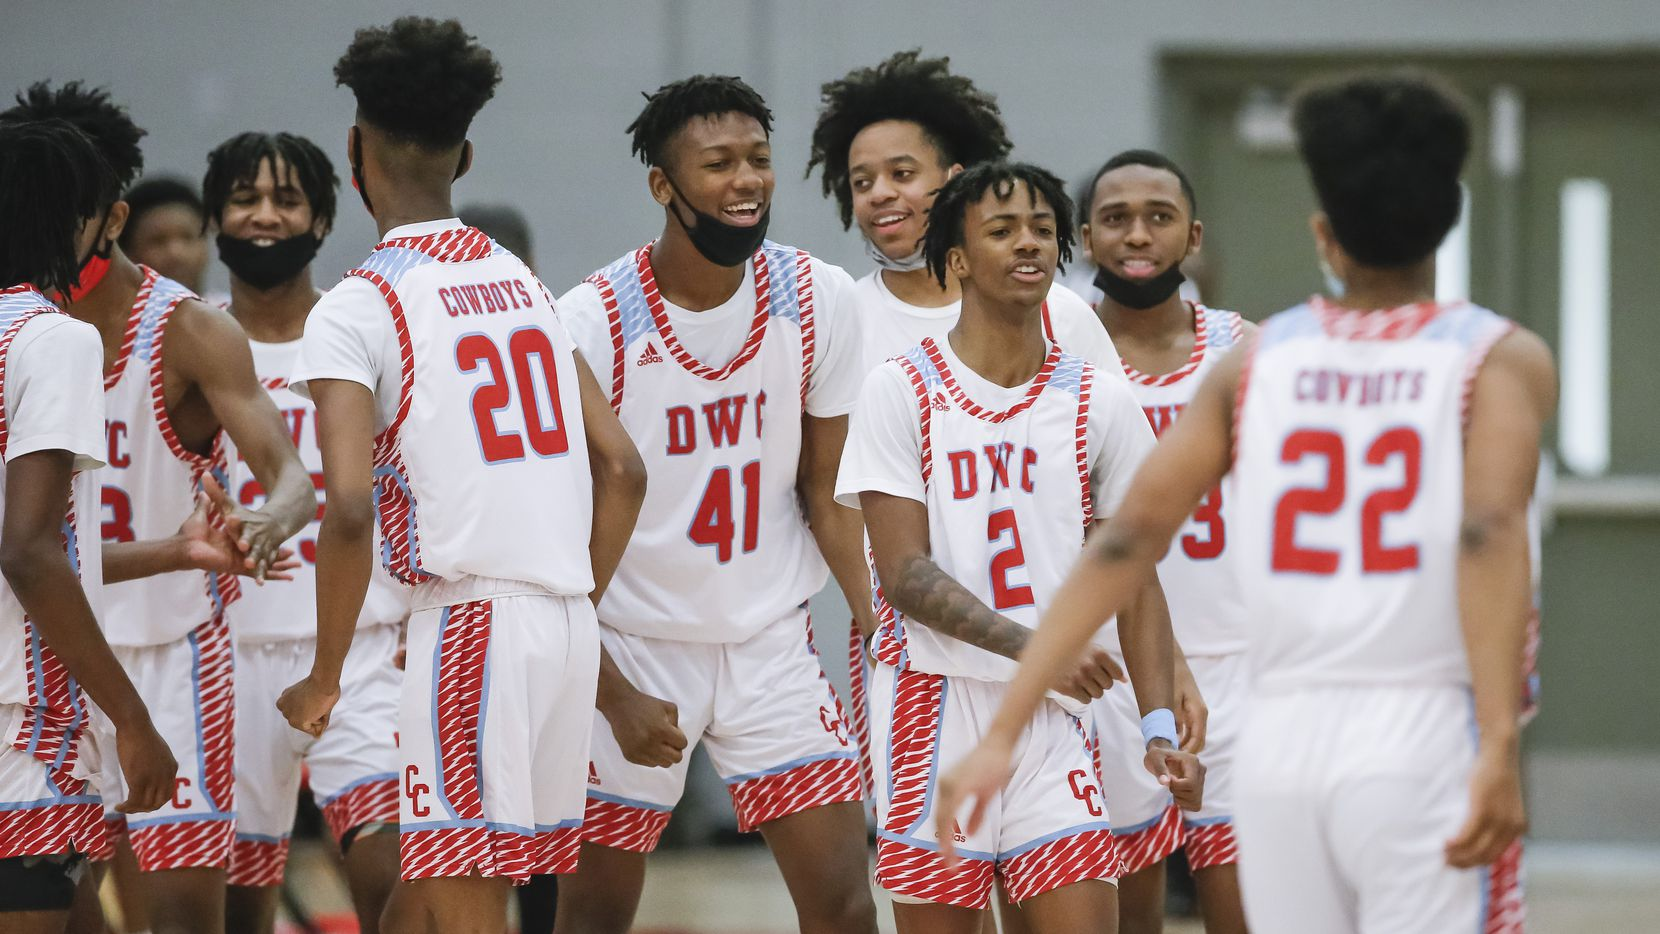 Carter celebrates a 73-58 win over Dallas Pinkston after a Class 4A regional quarterfinal boys basketball playoff game at Skyline High School in Dallas, Saturday, February 27, 2021.